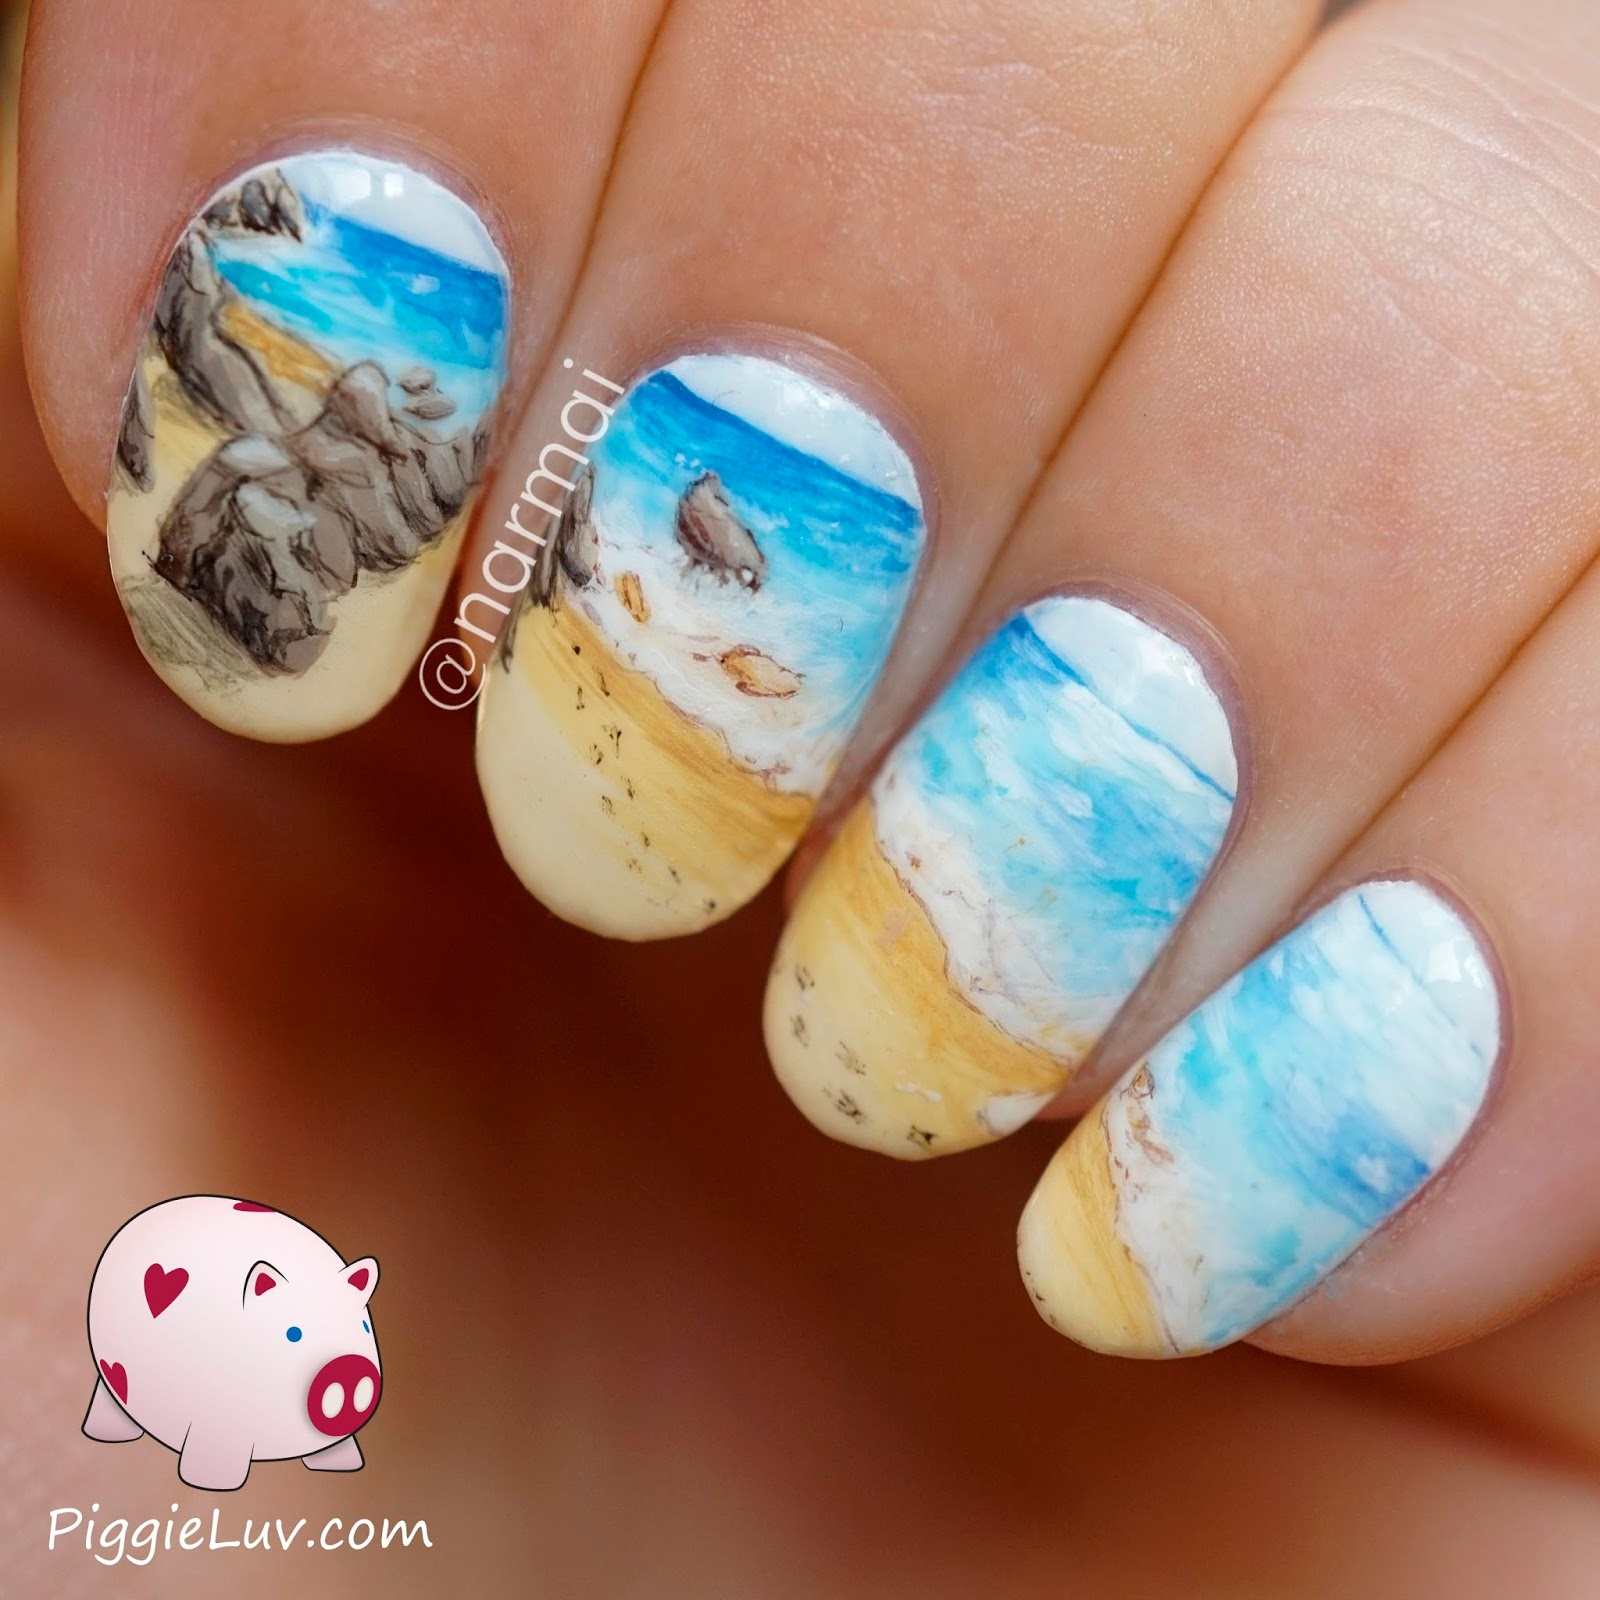 Piggieluv guest post for lucys stash beach landscape nail art beach landscape nail art prinsesfo Image collections